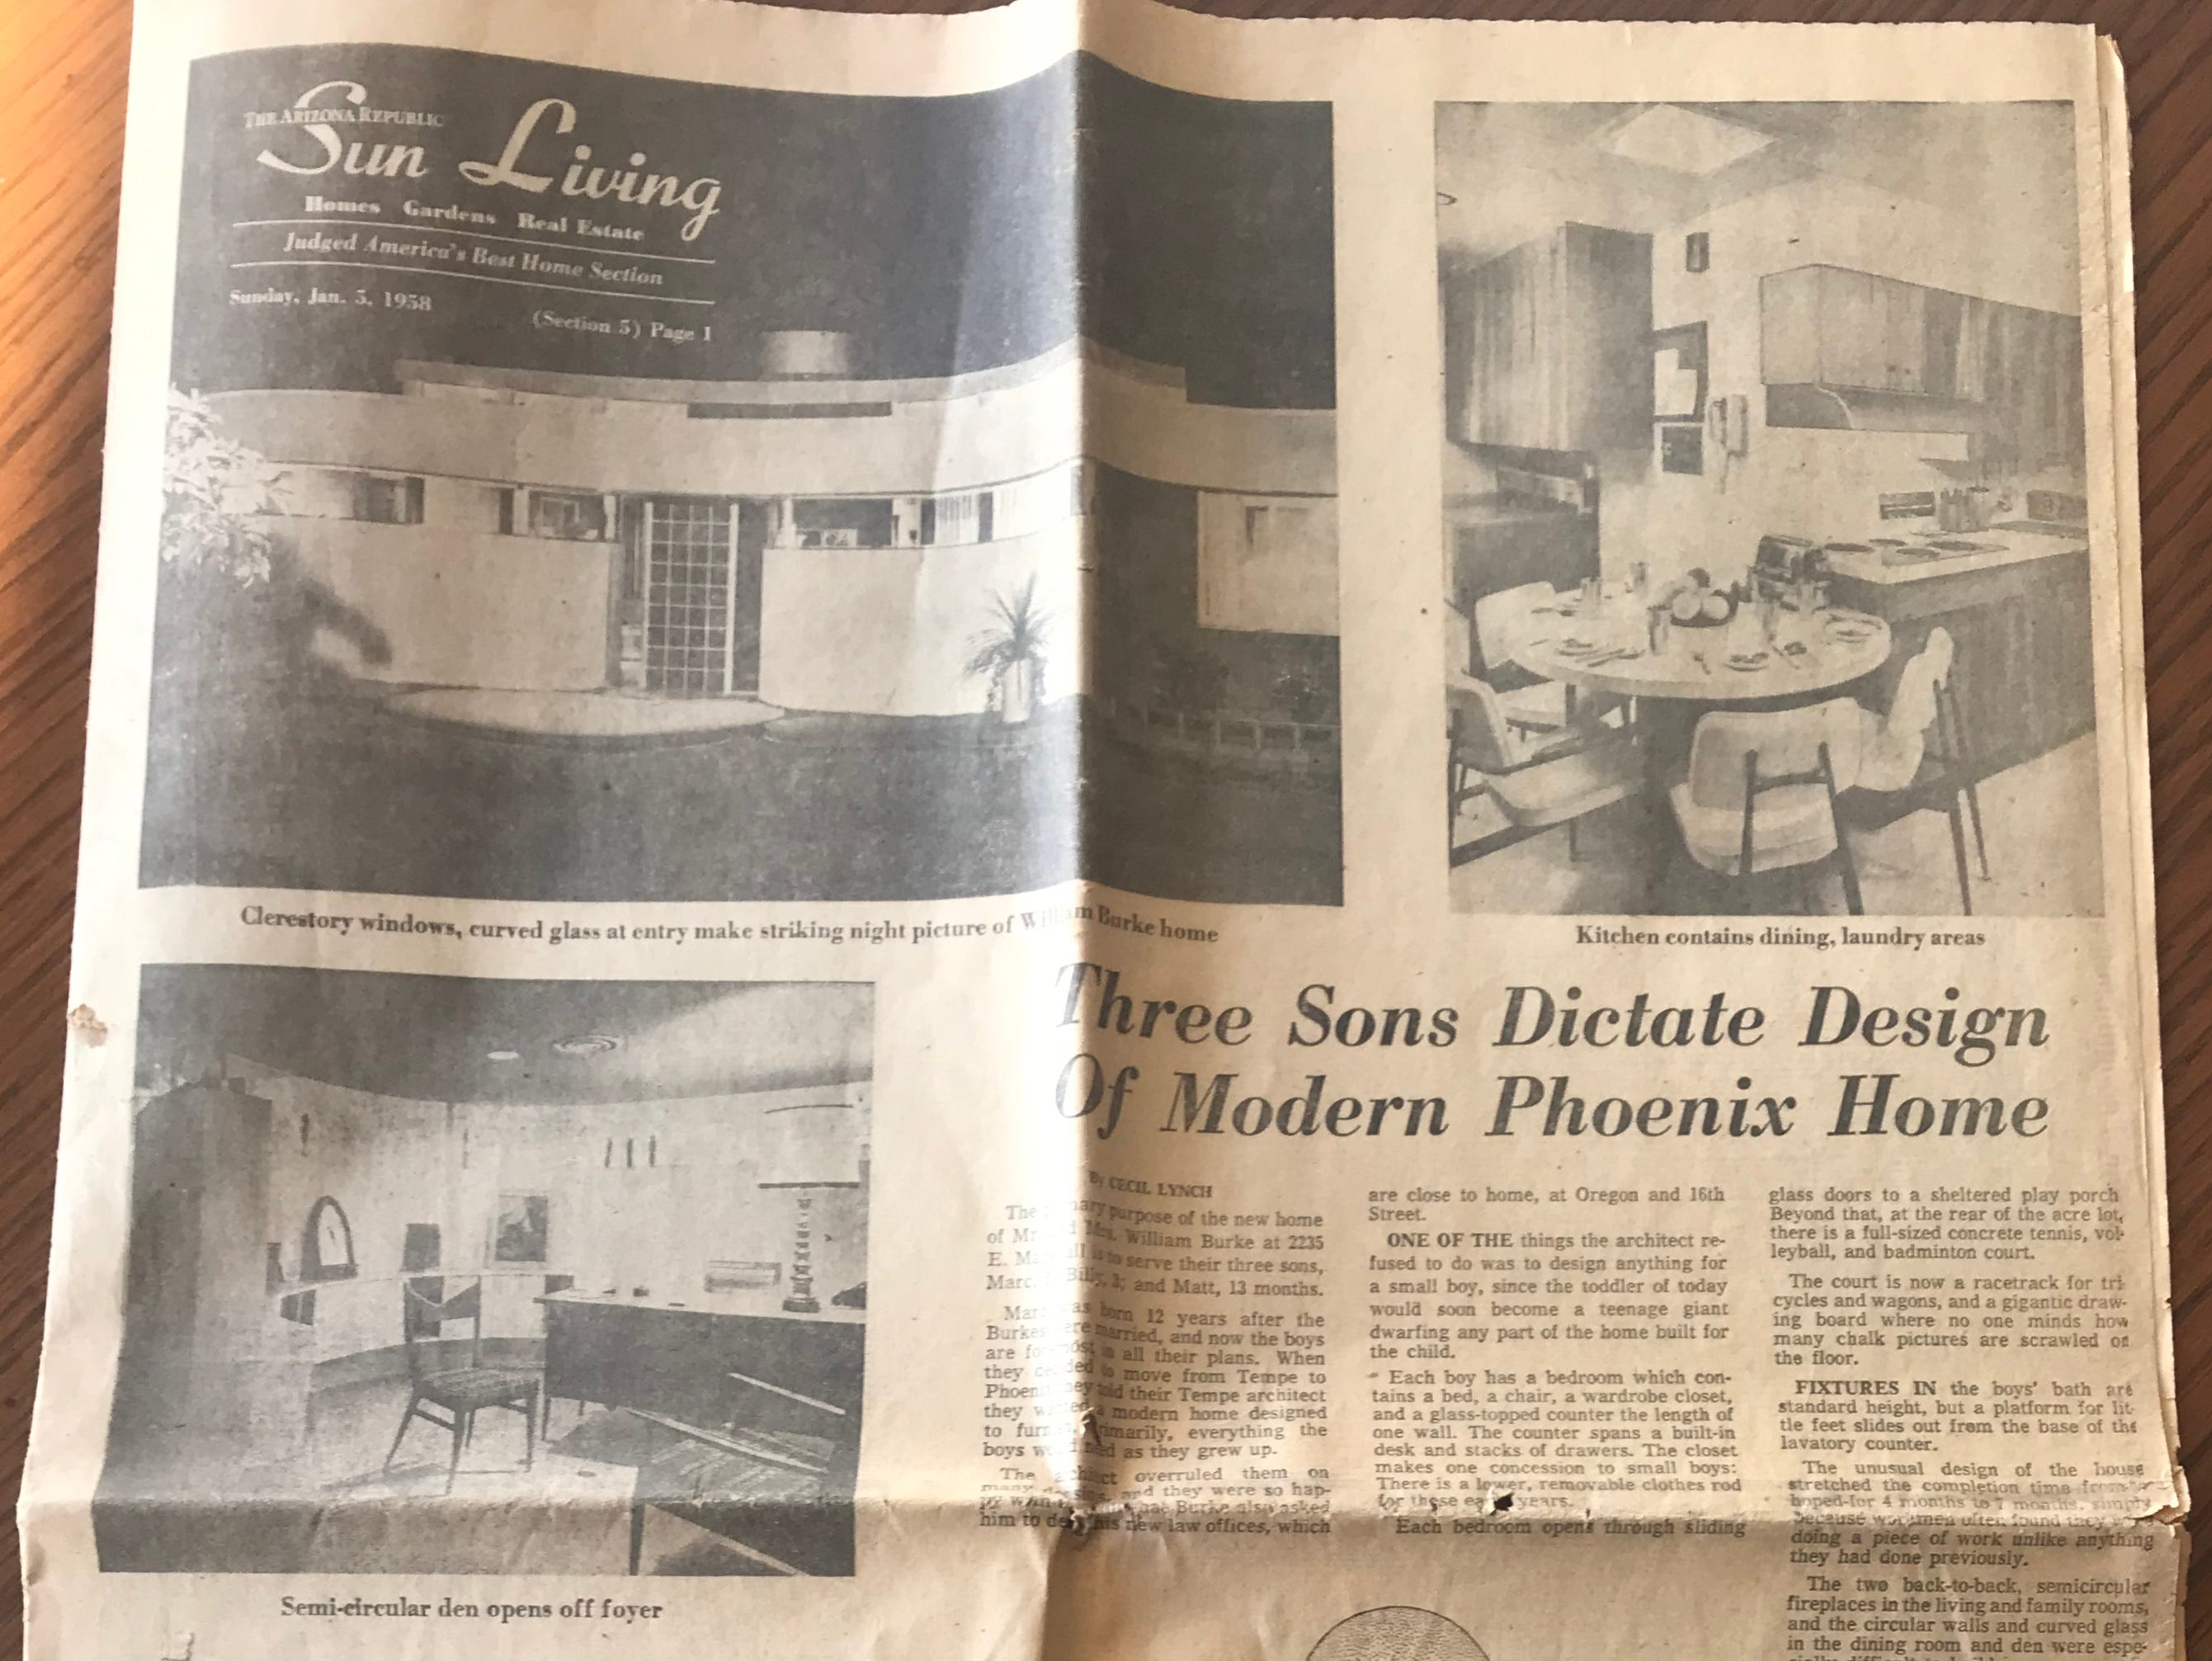 William Burke's childhood home in the Biltmore area was featured in The Arizona Republic's Sun Living section on Jan. 5, 1958. Some of the furniture from that home now furnishes the Sunnyslope home.